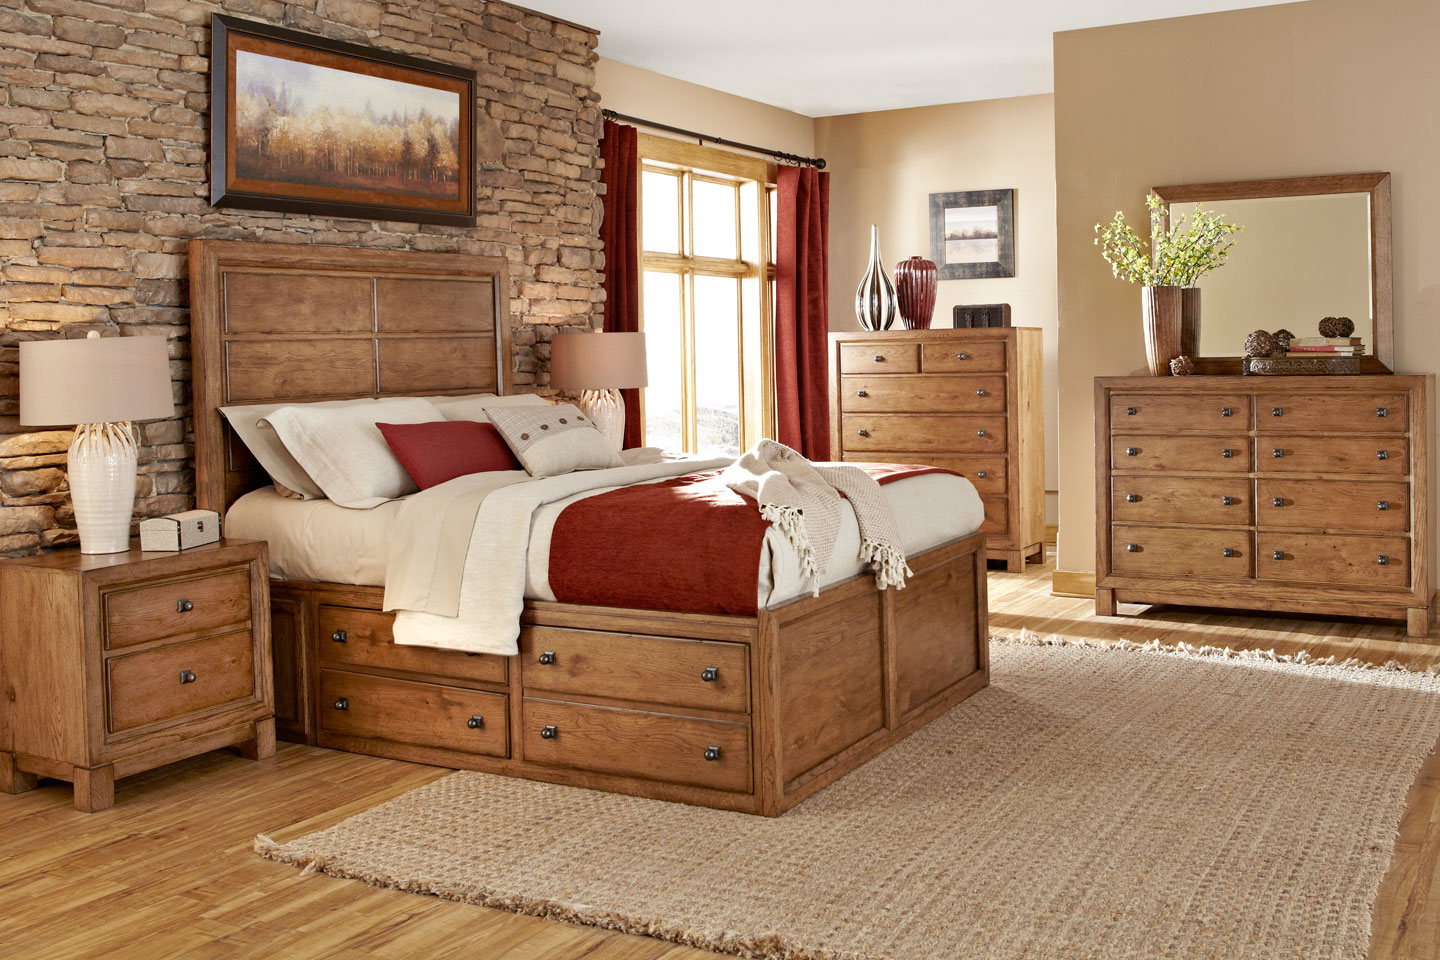 Outstanding Rustic Wood Bedroom Furniture 1440 x 960 · 336 kB · jpeg